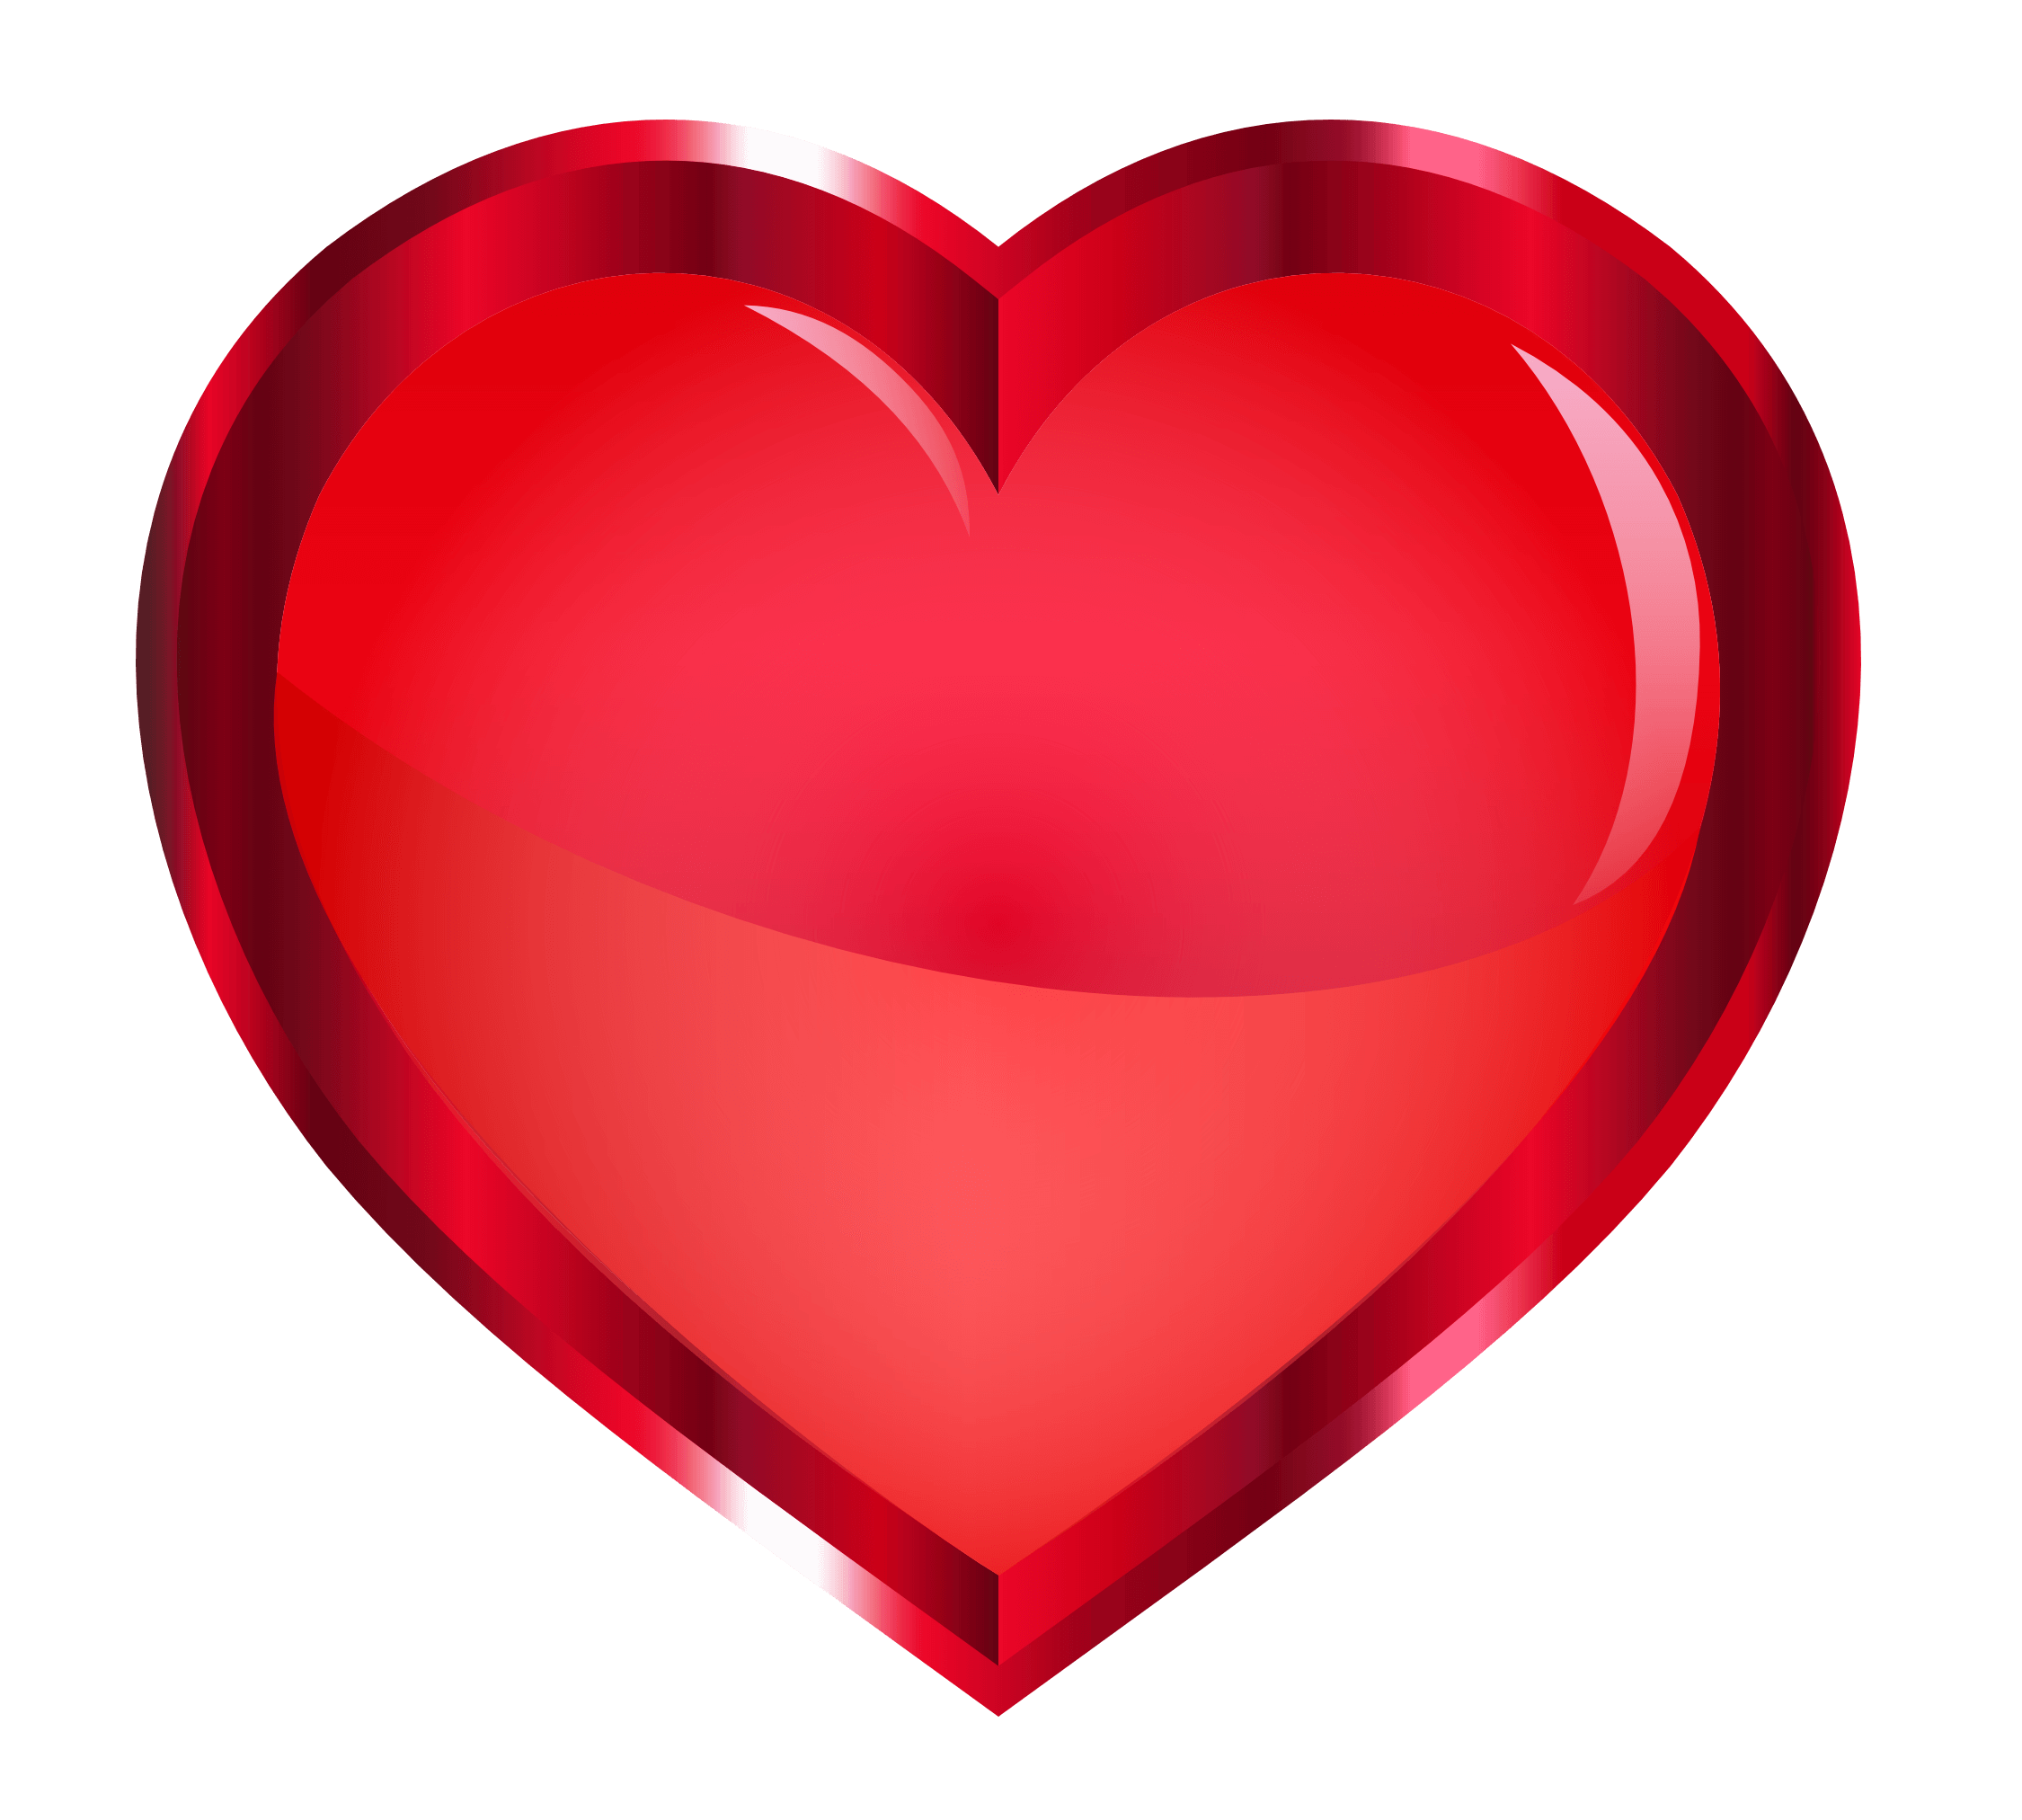 Red heart transparent image. Hearts background png